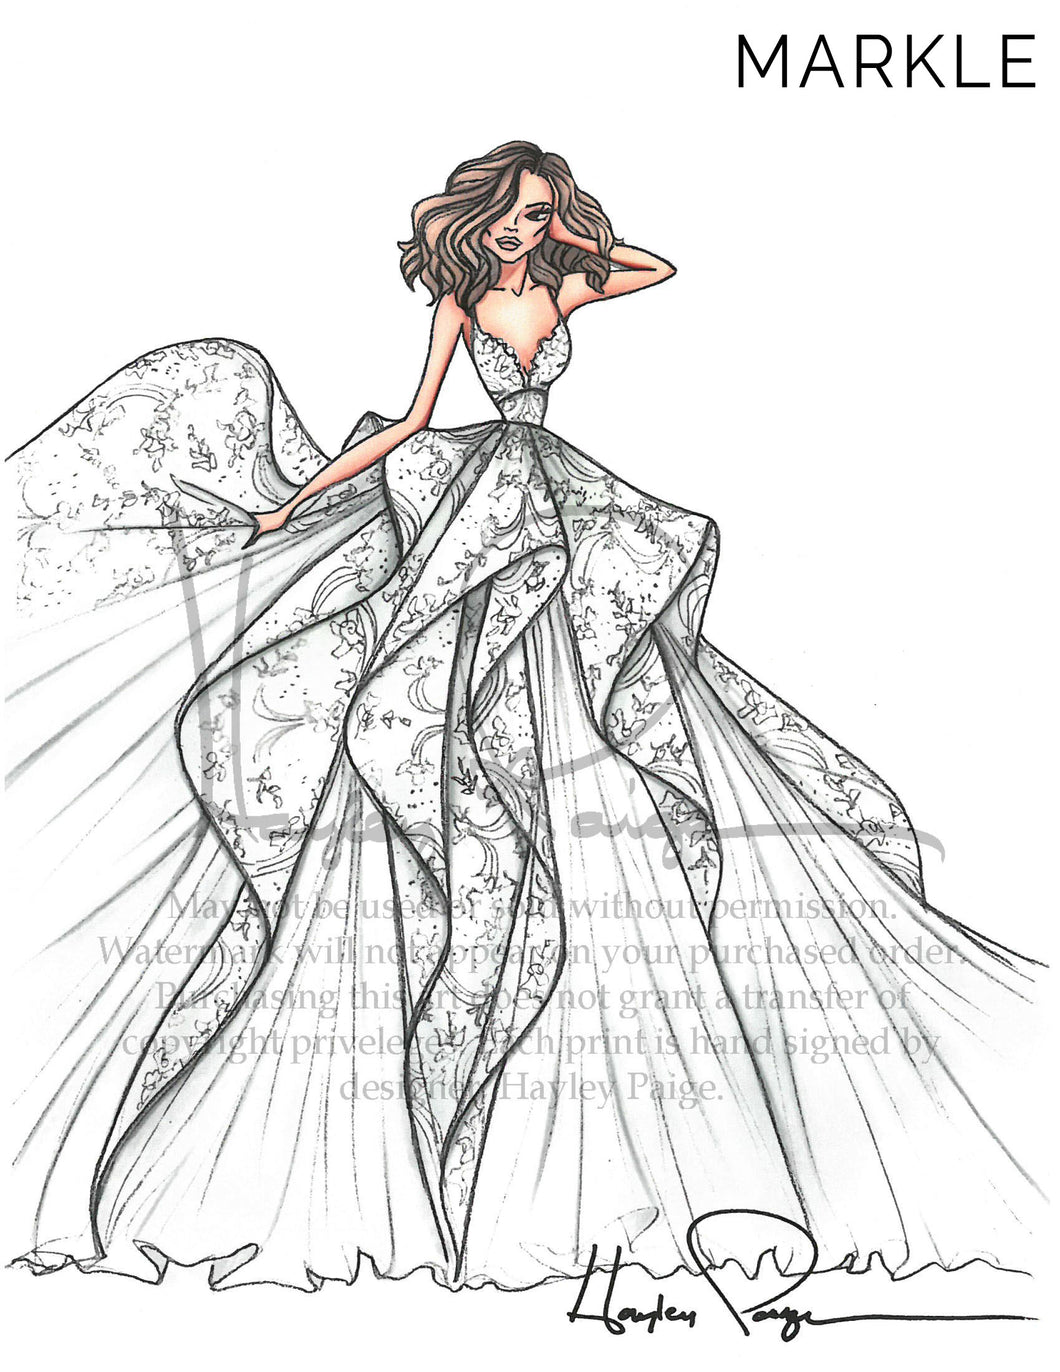 Markle- Hayley Paige Bridal Gown Printed Illustration